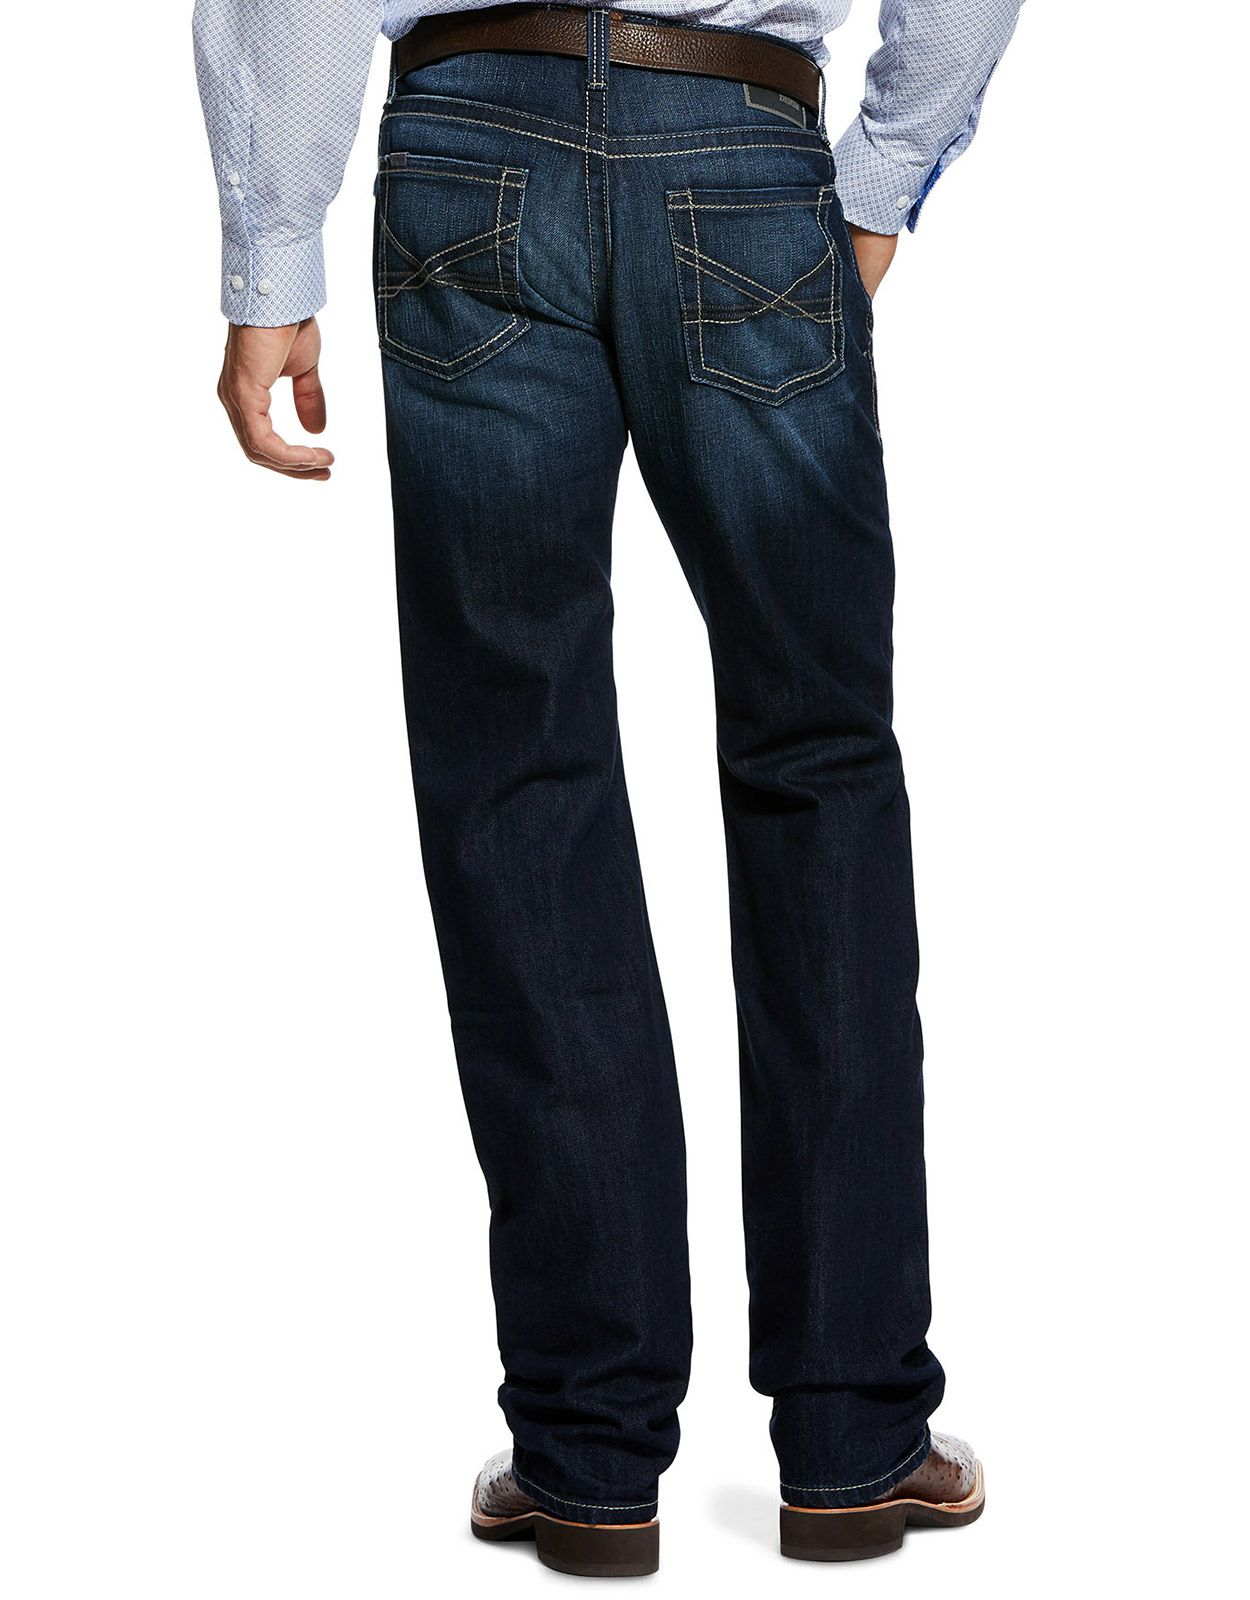 Ariat Men's M5 Low Rise Straight Fit Straight Leg Jeans - State